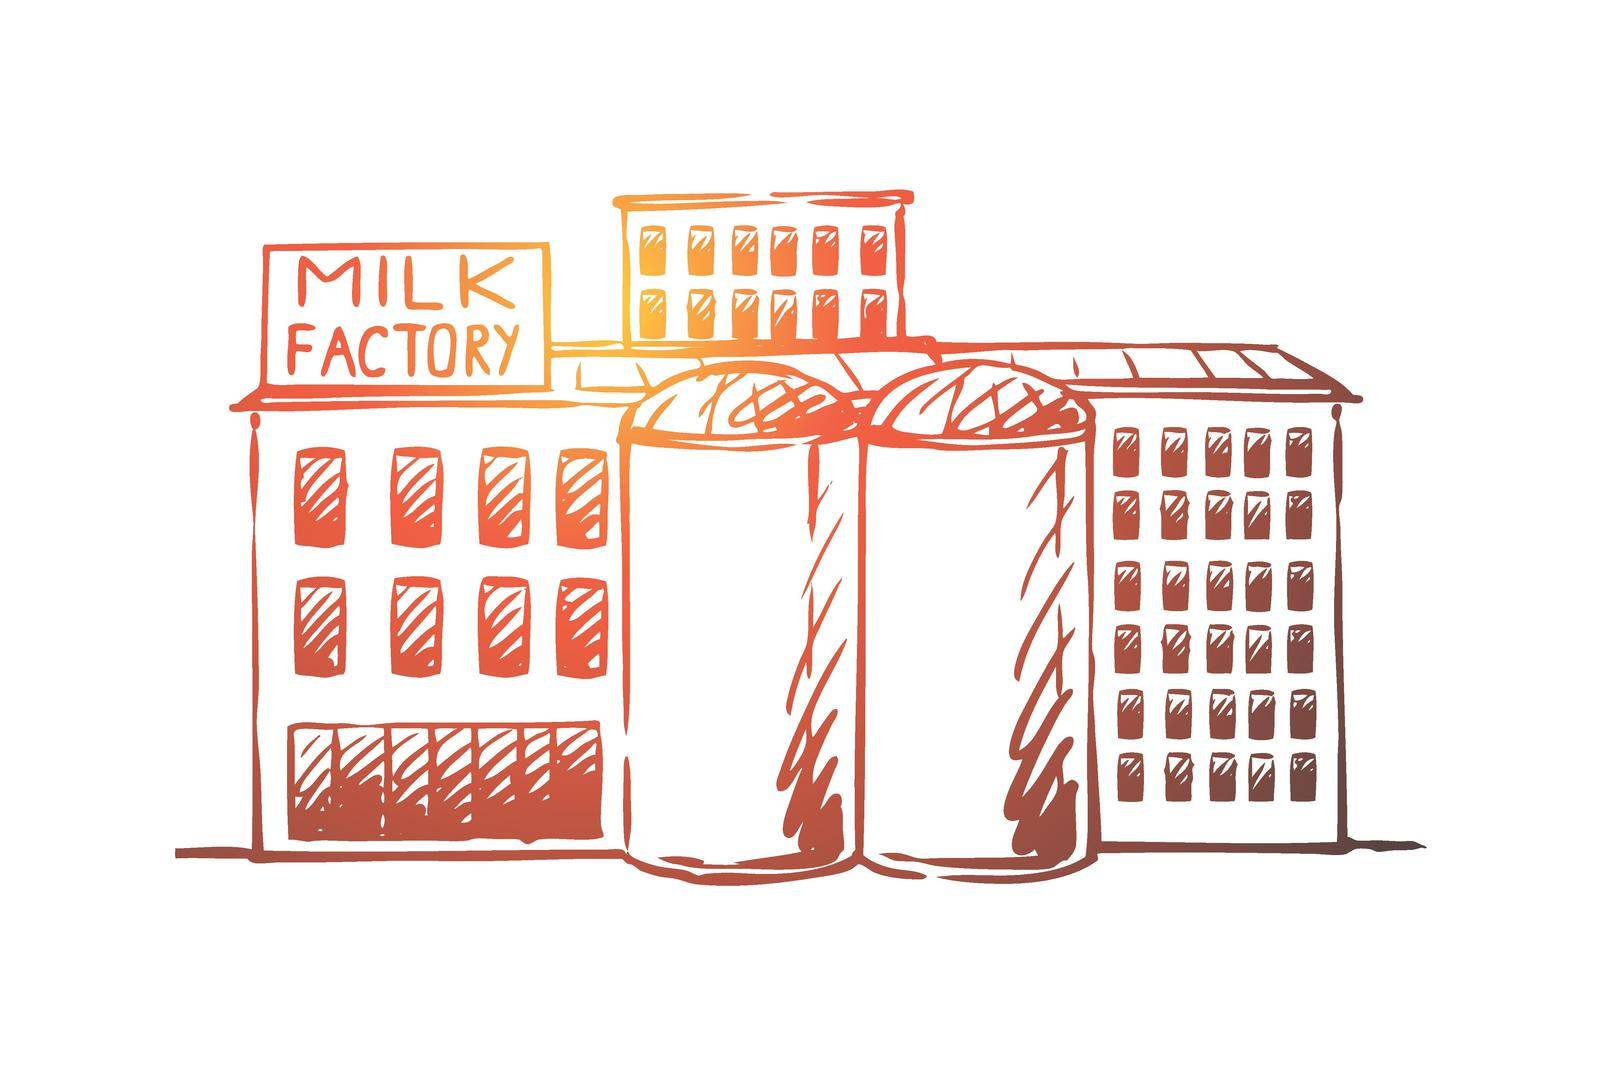 Milk, factory, plant, production, industry concept. Hand drawn isolated vector. by Vasilyeva